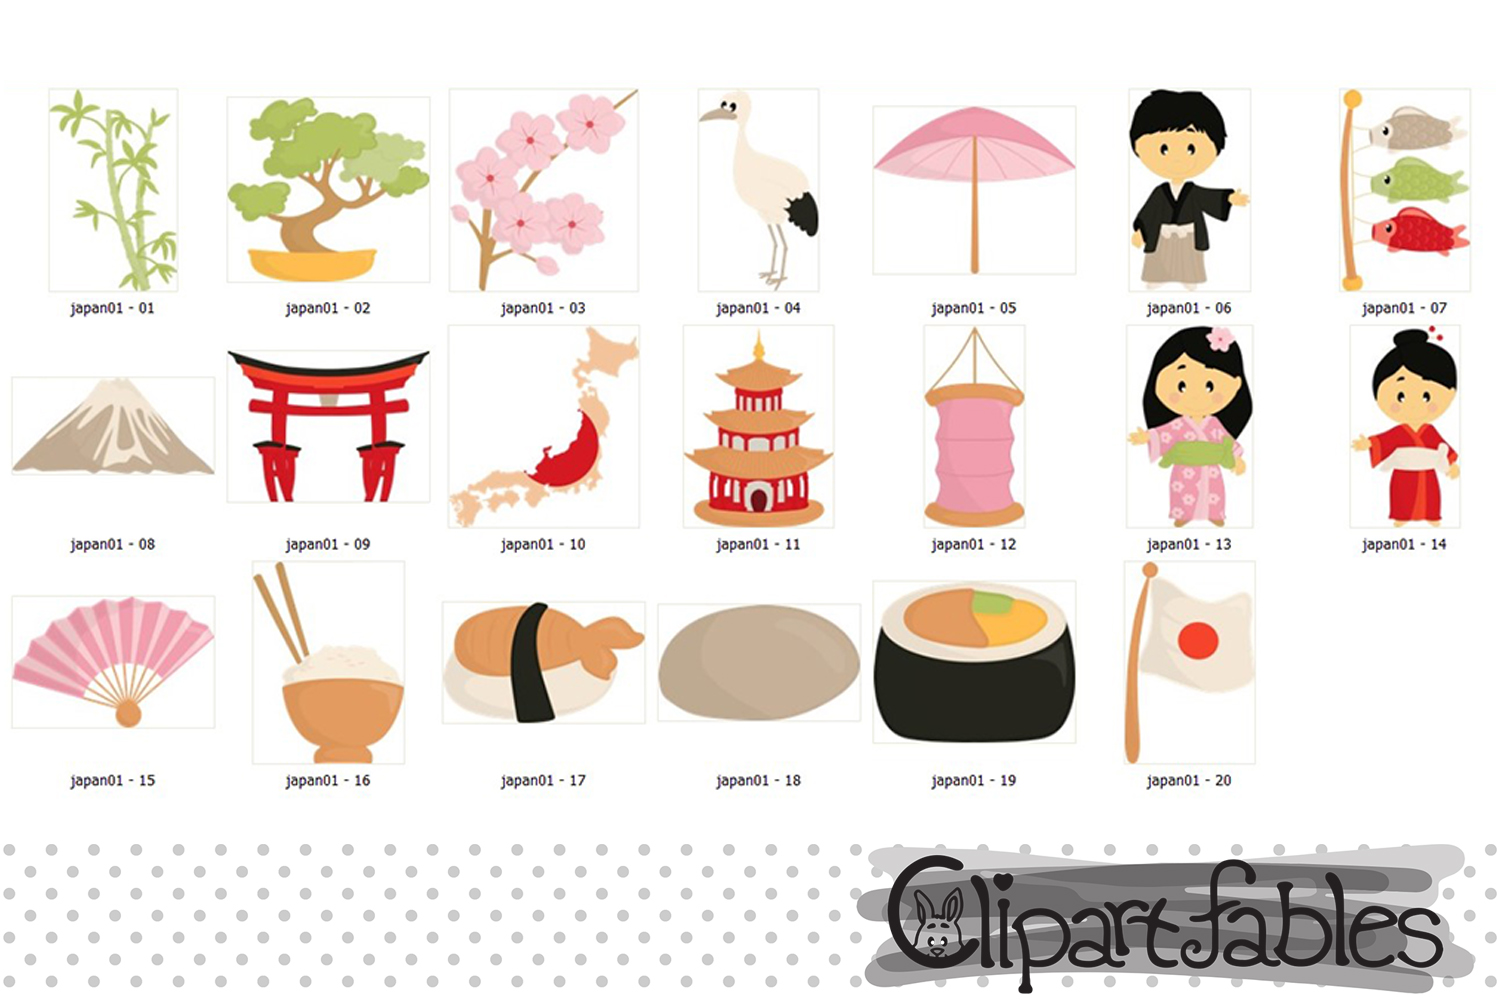 Japan Tradition clipart, japanese clip art, cute travel art example image 2